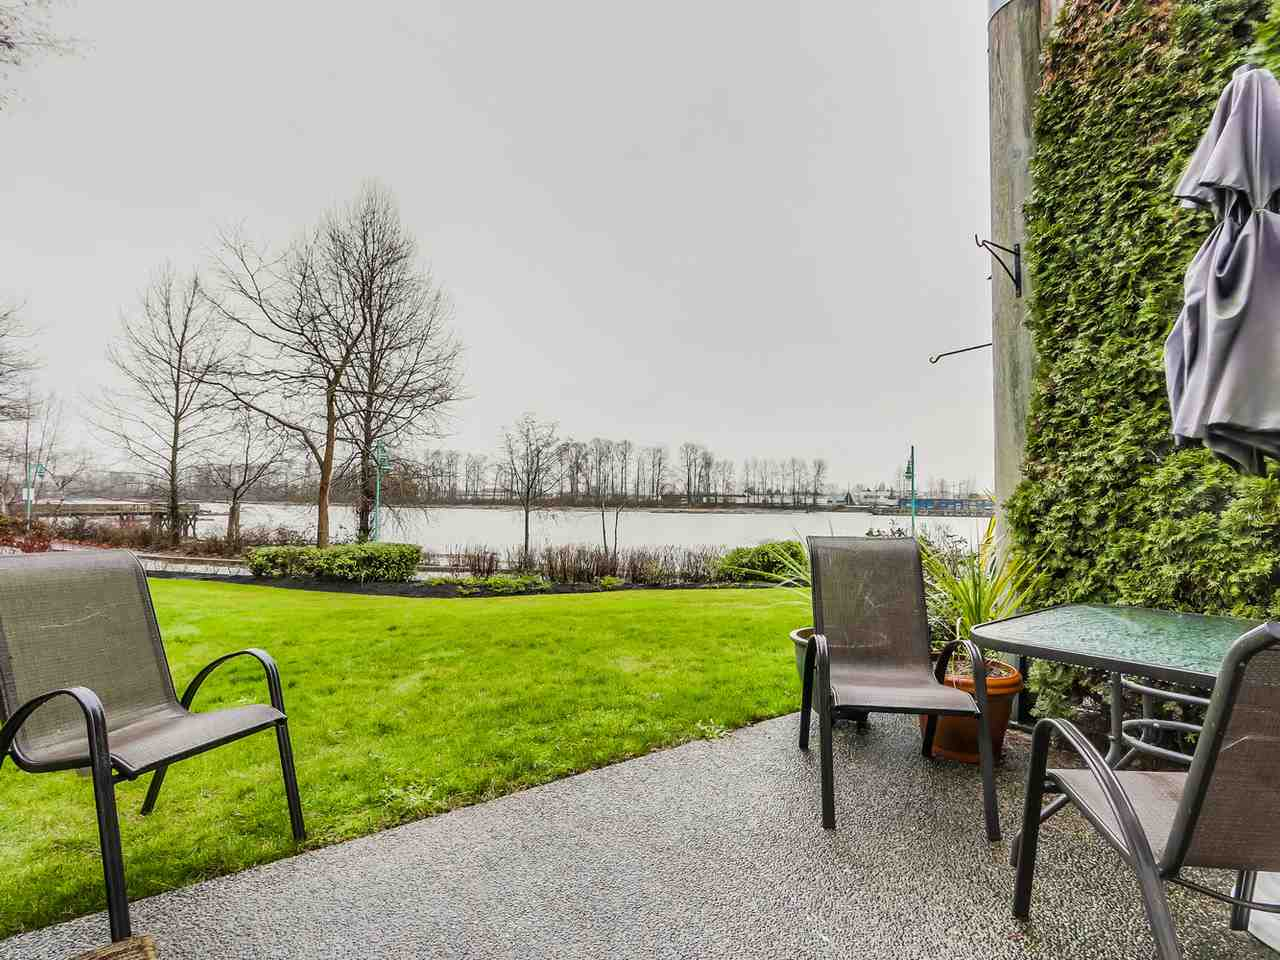 Main Photo: 3 2138 E KENT AVENUE SOUTH in Vancouver: Fraserview VE Townhouse for sale (Vancouver East)  : MLS® # R2031145